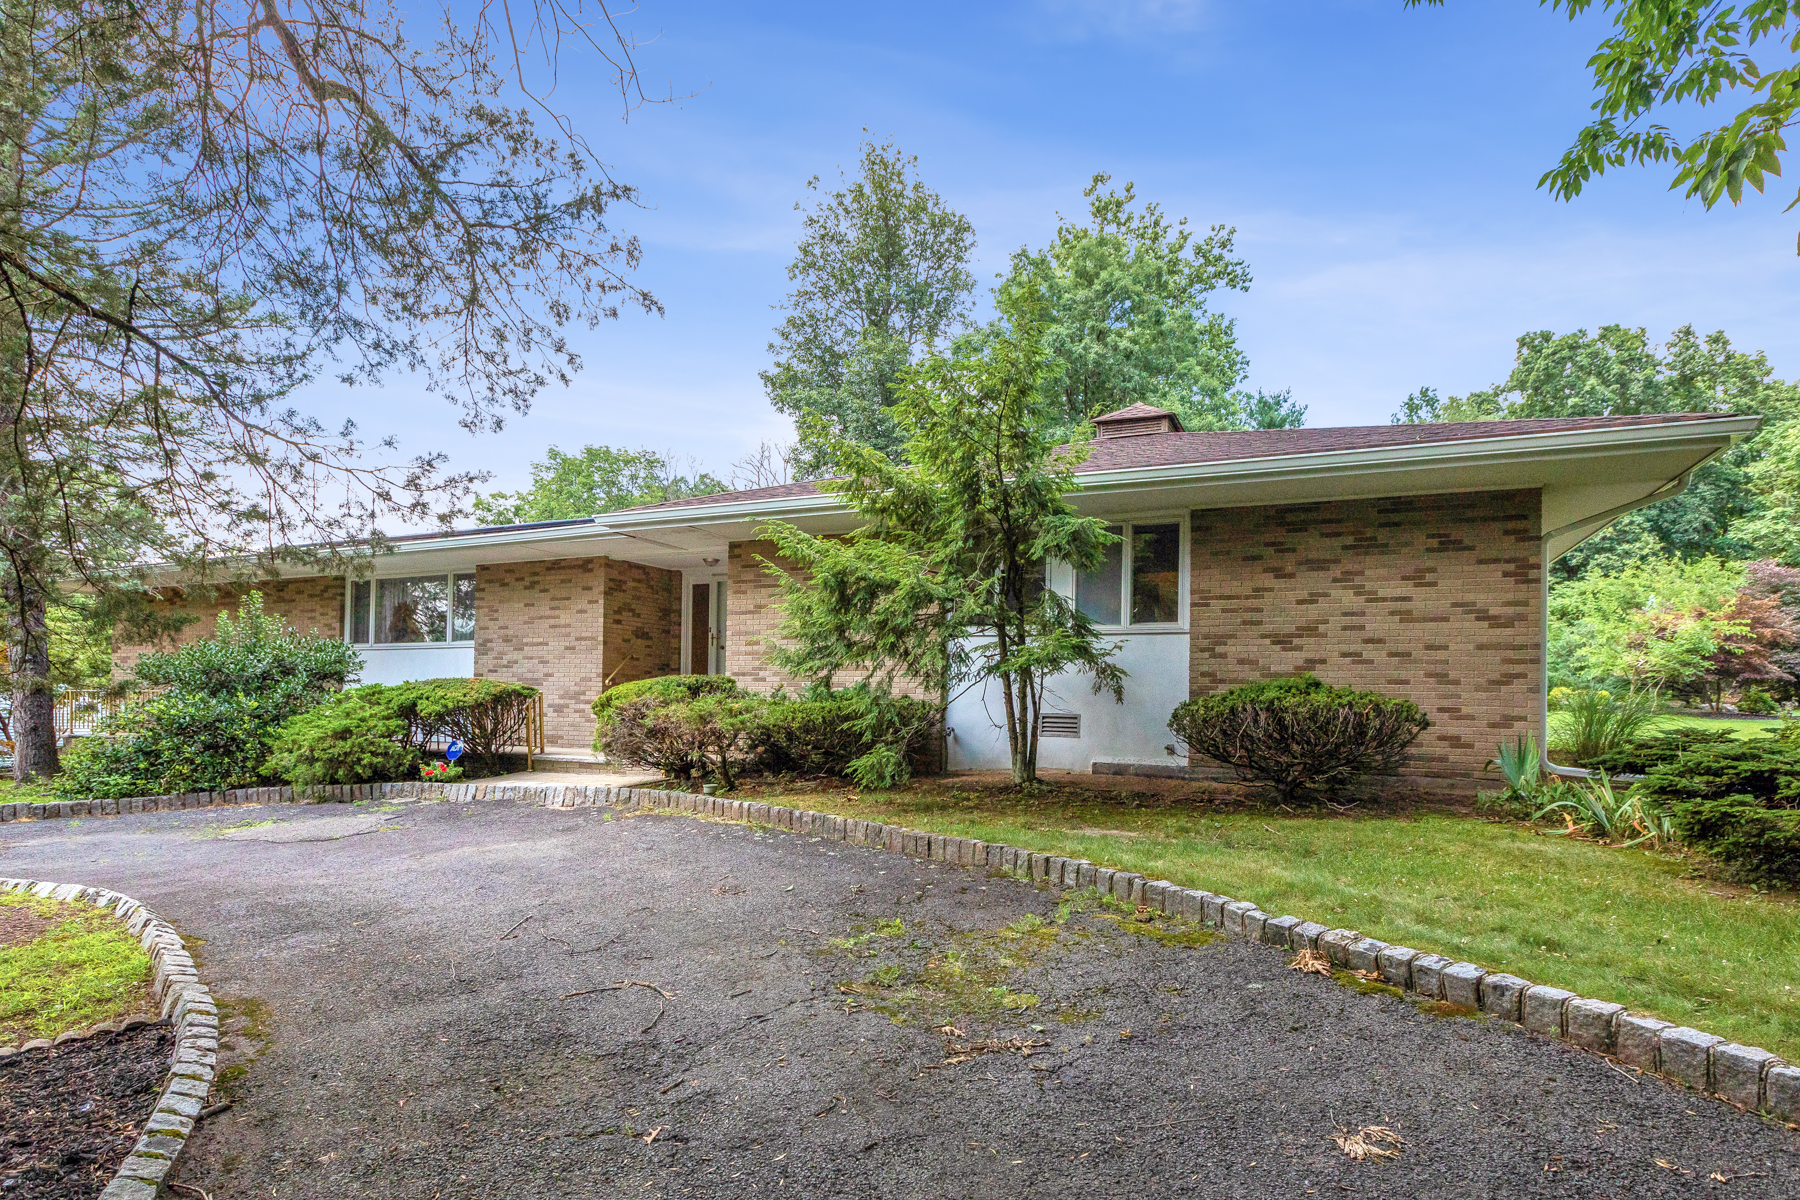 Single Family Homes for Active at Location! Location! 38 Hilldale Rd Montville Township, New Jersey 07058 United States